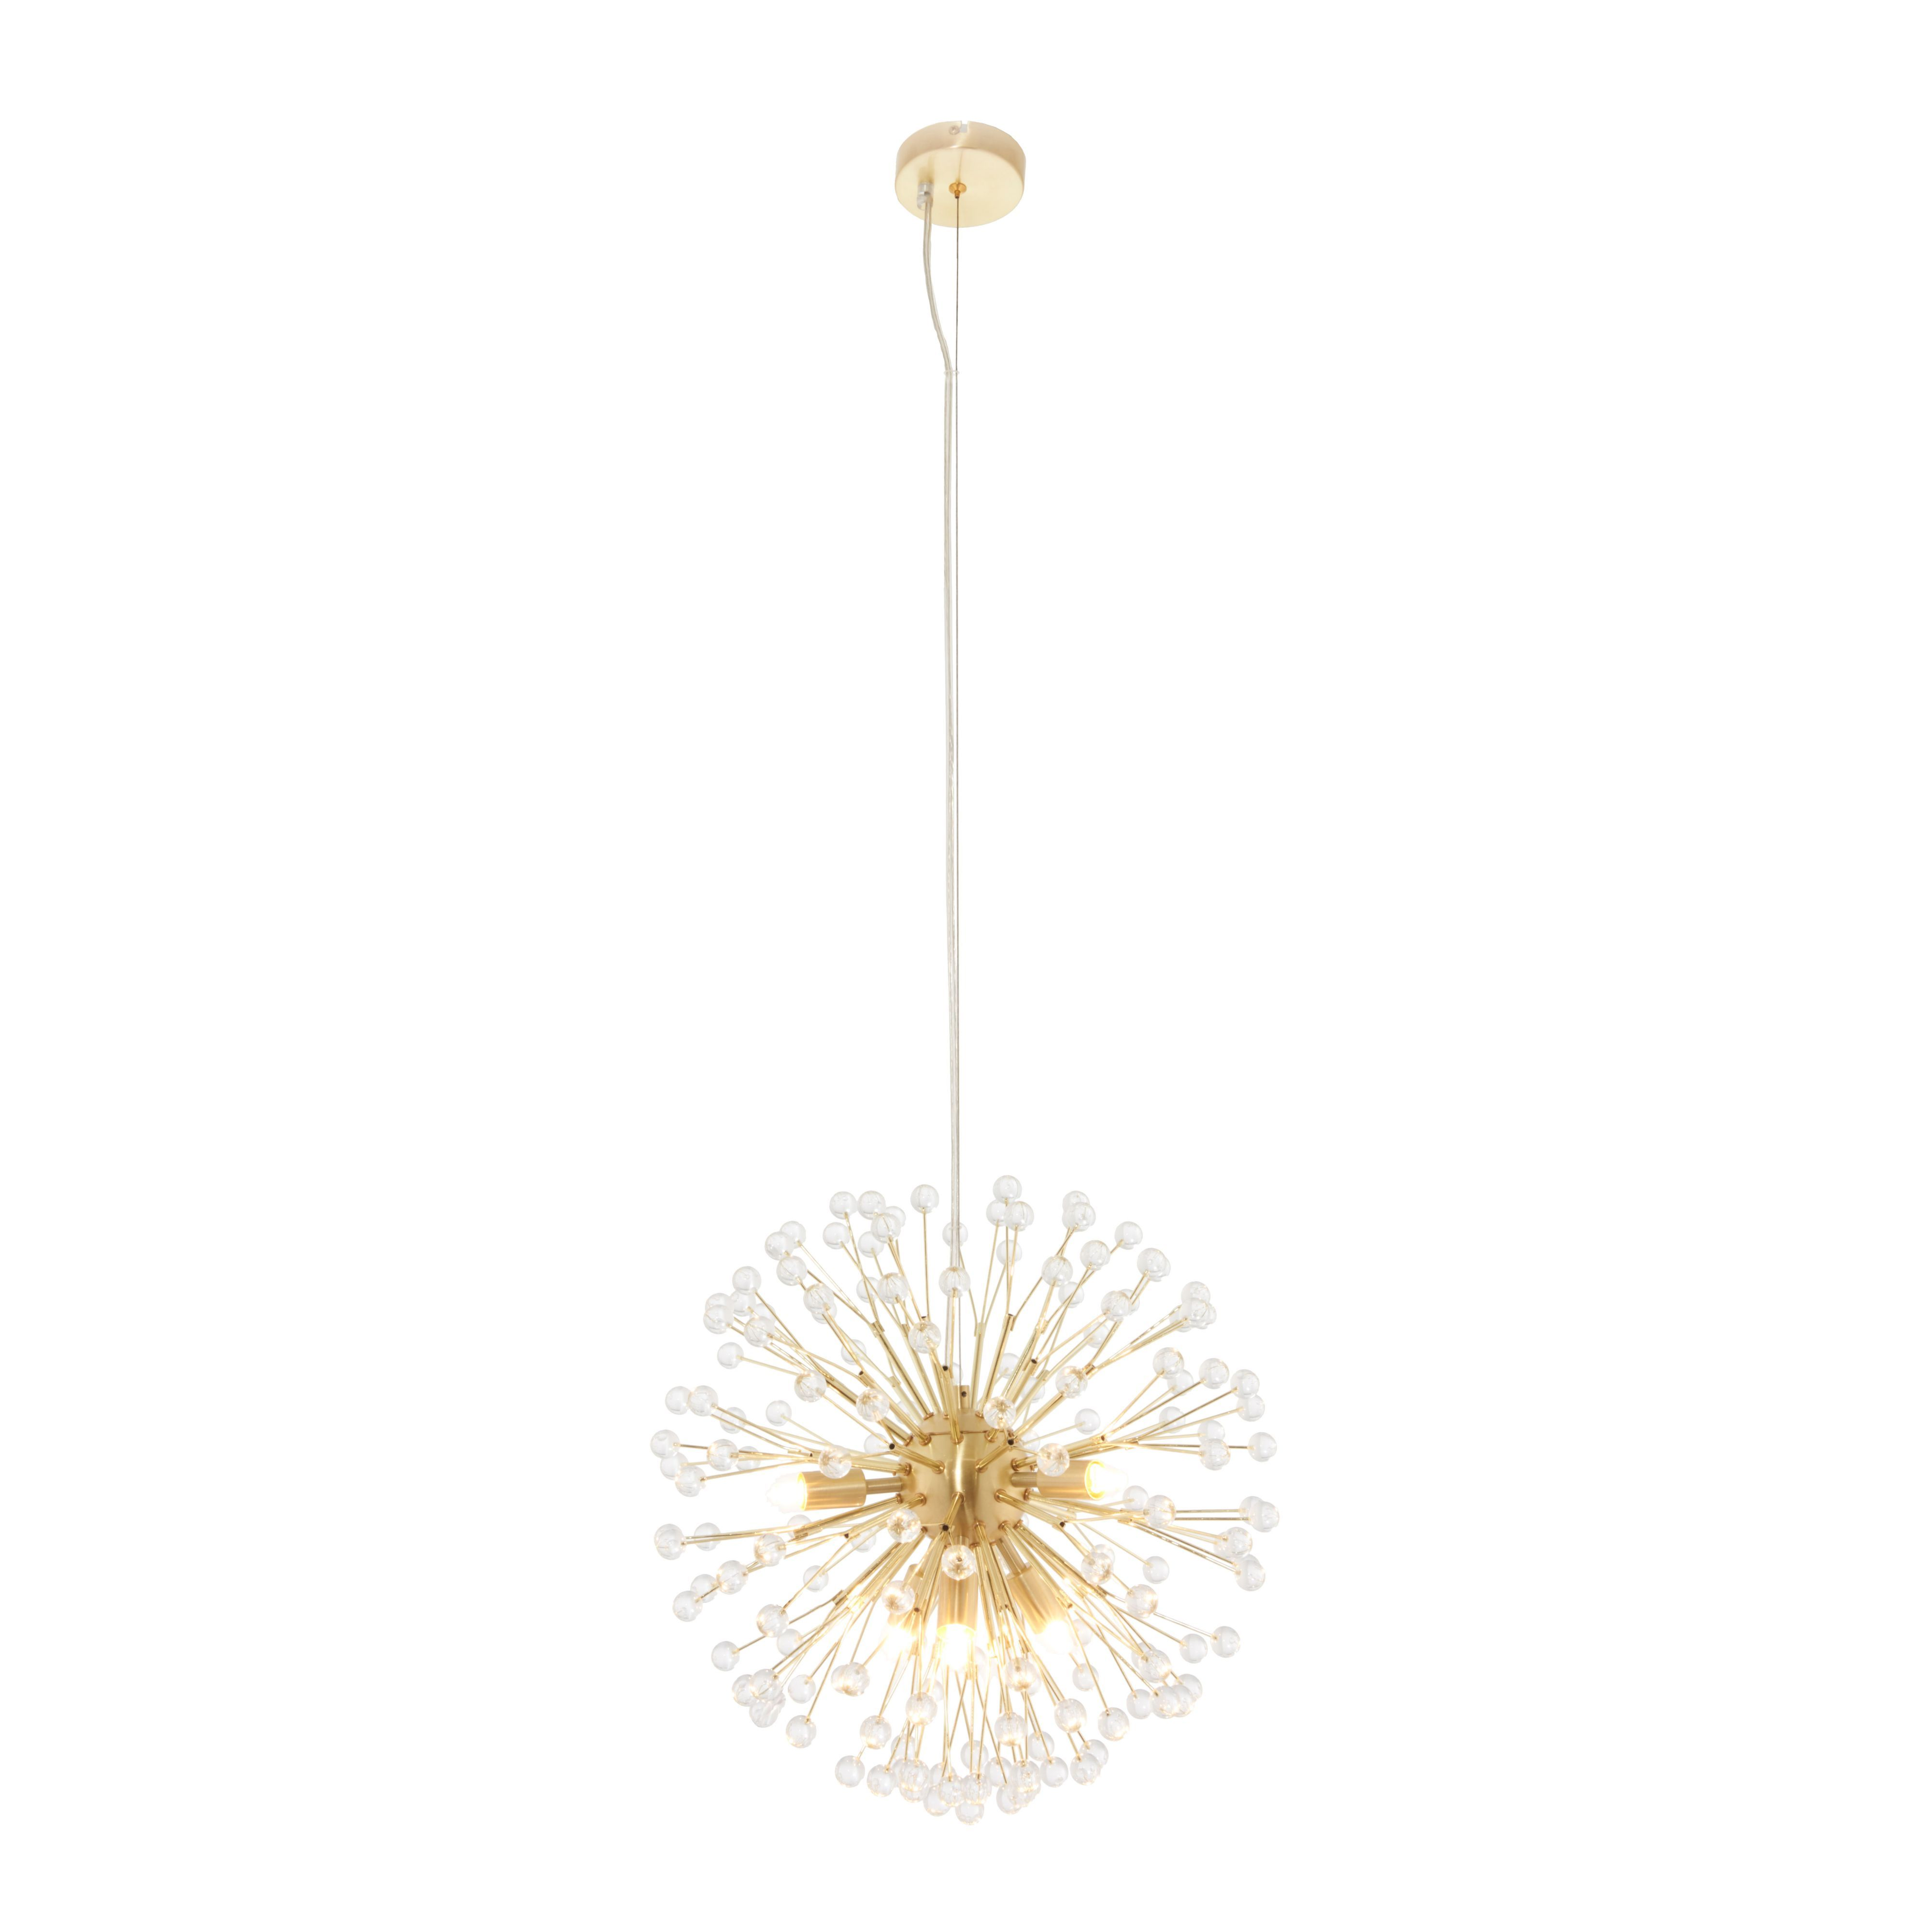 Toulouse Multi Arm Cluster Brushed Gold Effect 6 Lamp Pendant ...